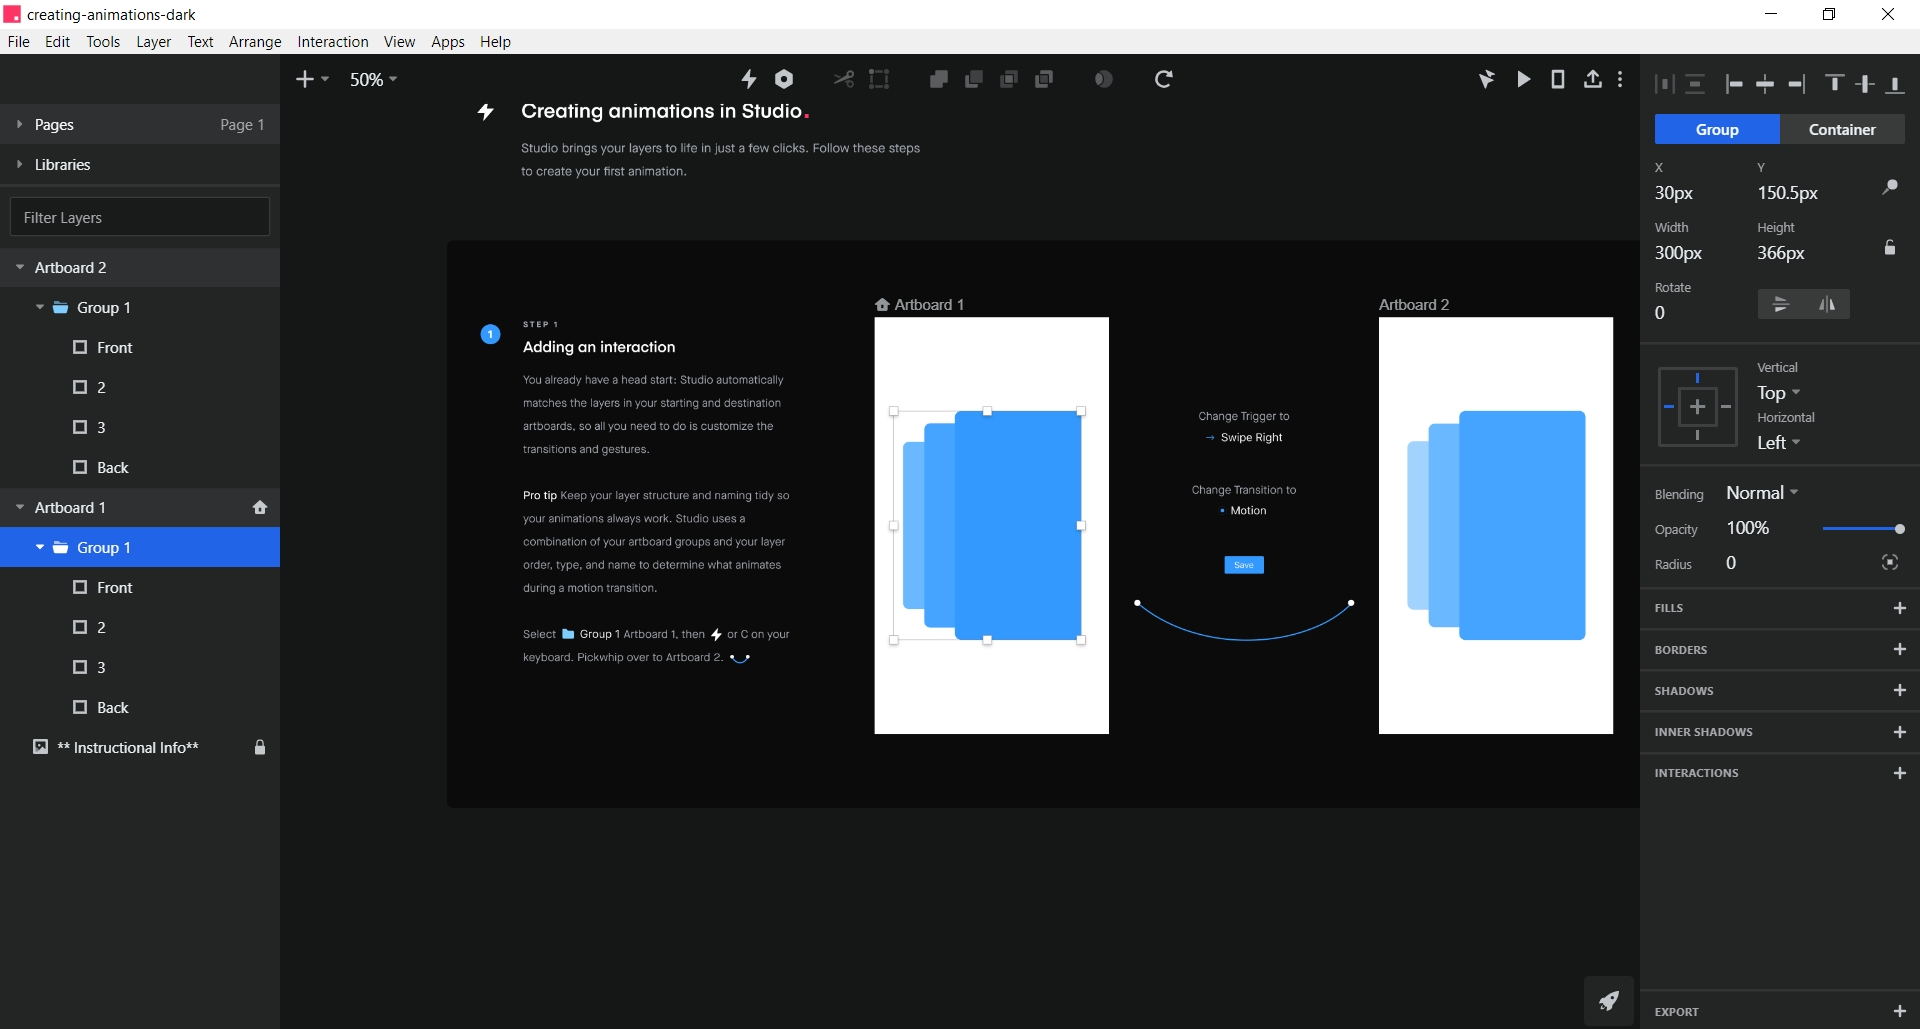 Invison Studio UX Design Tool